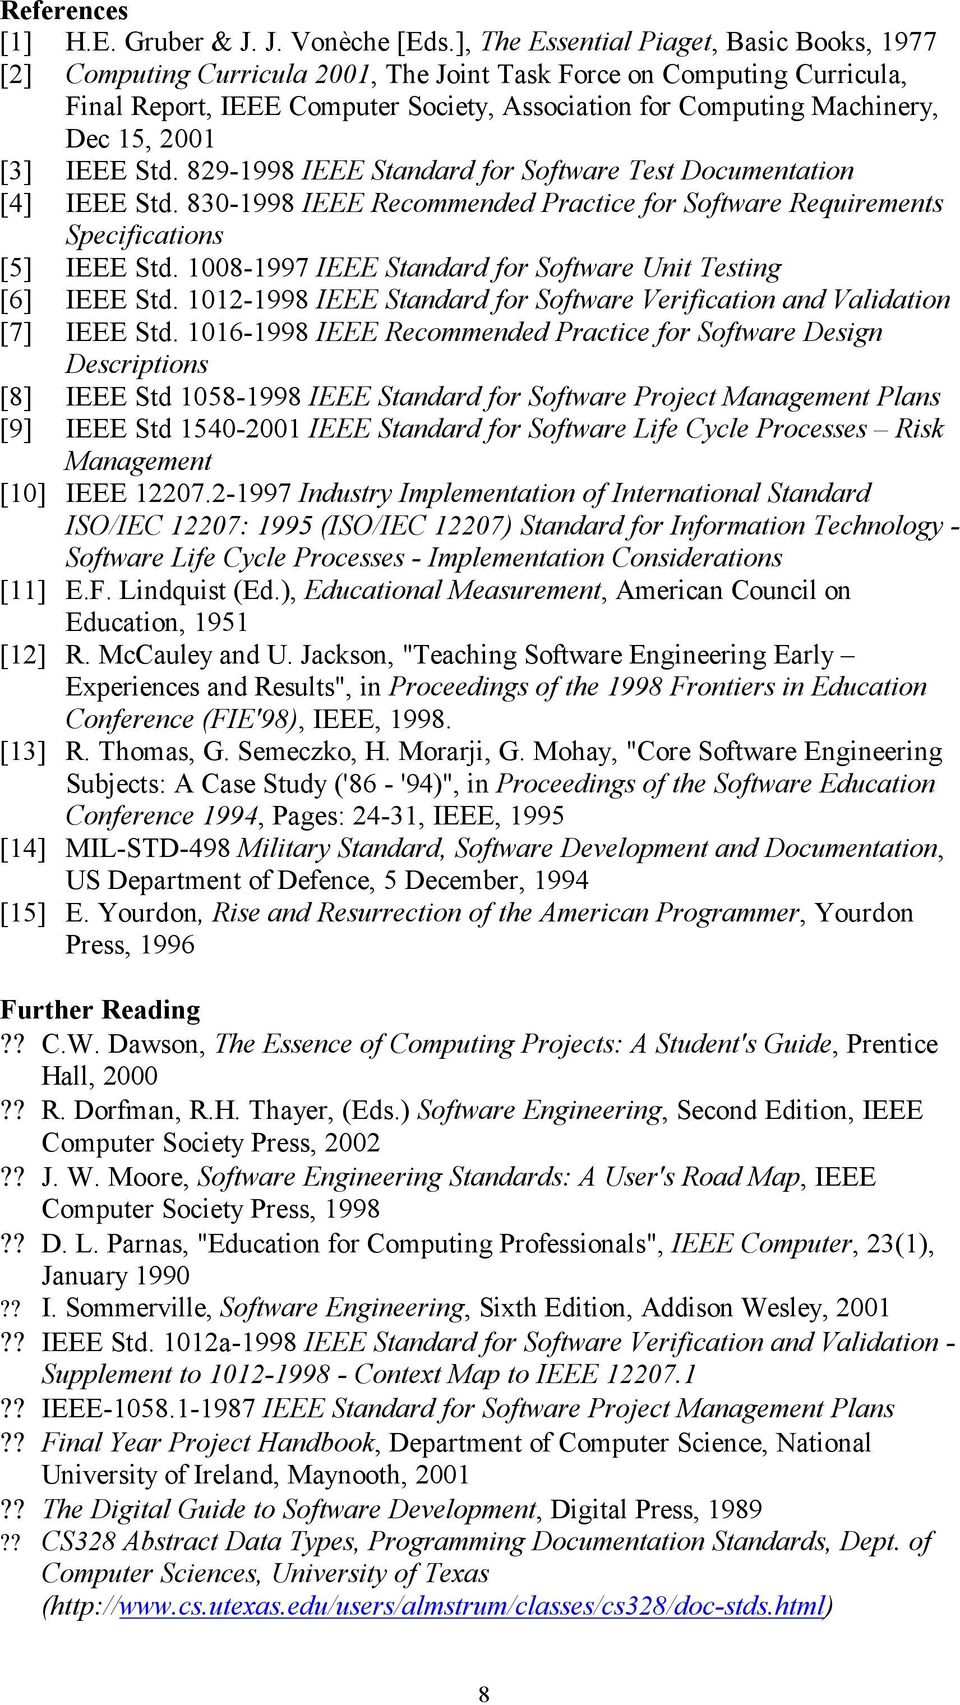 2001 [3] IEEE Std. 829-1998 IEEE Standard for Software Test Documentation [4] IEEE Std. 830-1998 IEEE Recommended Practice for Software Requirements Specifications [5] IEEE Std.